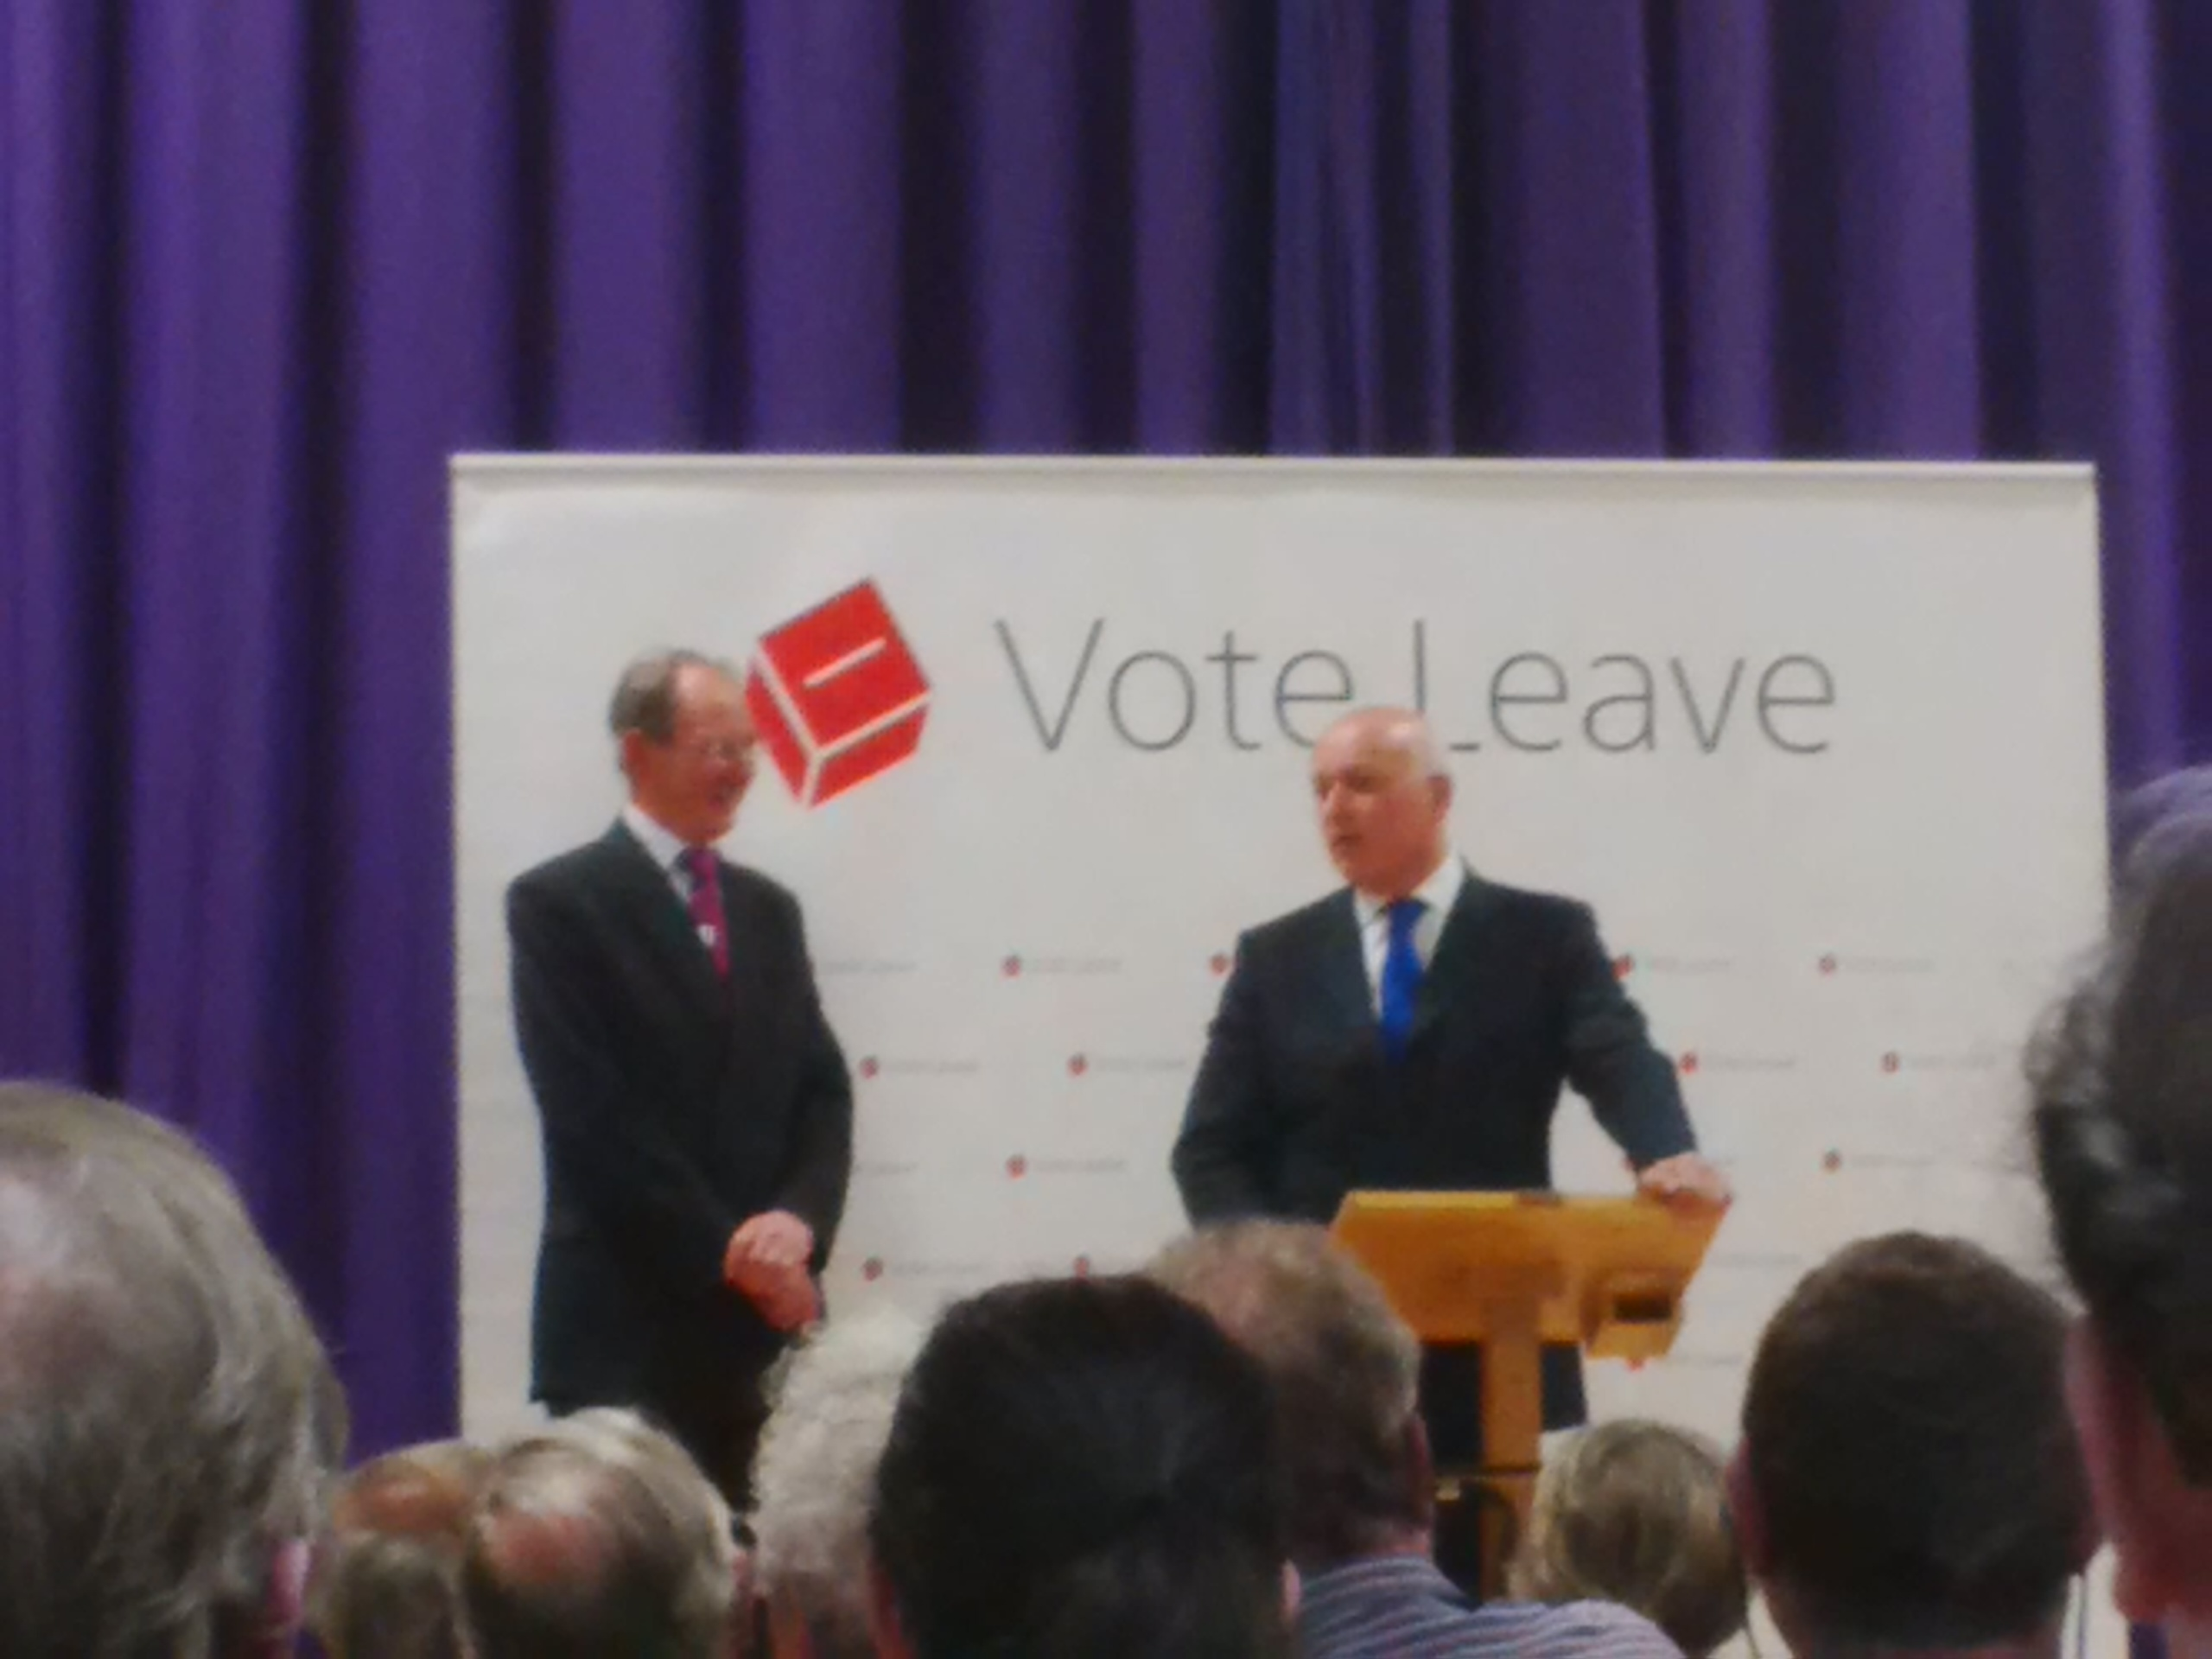 Vote Leave Rally, Newport, IW. 20th May 2016 Iain Duncan Smith MP and Andrew Turner MP